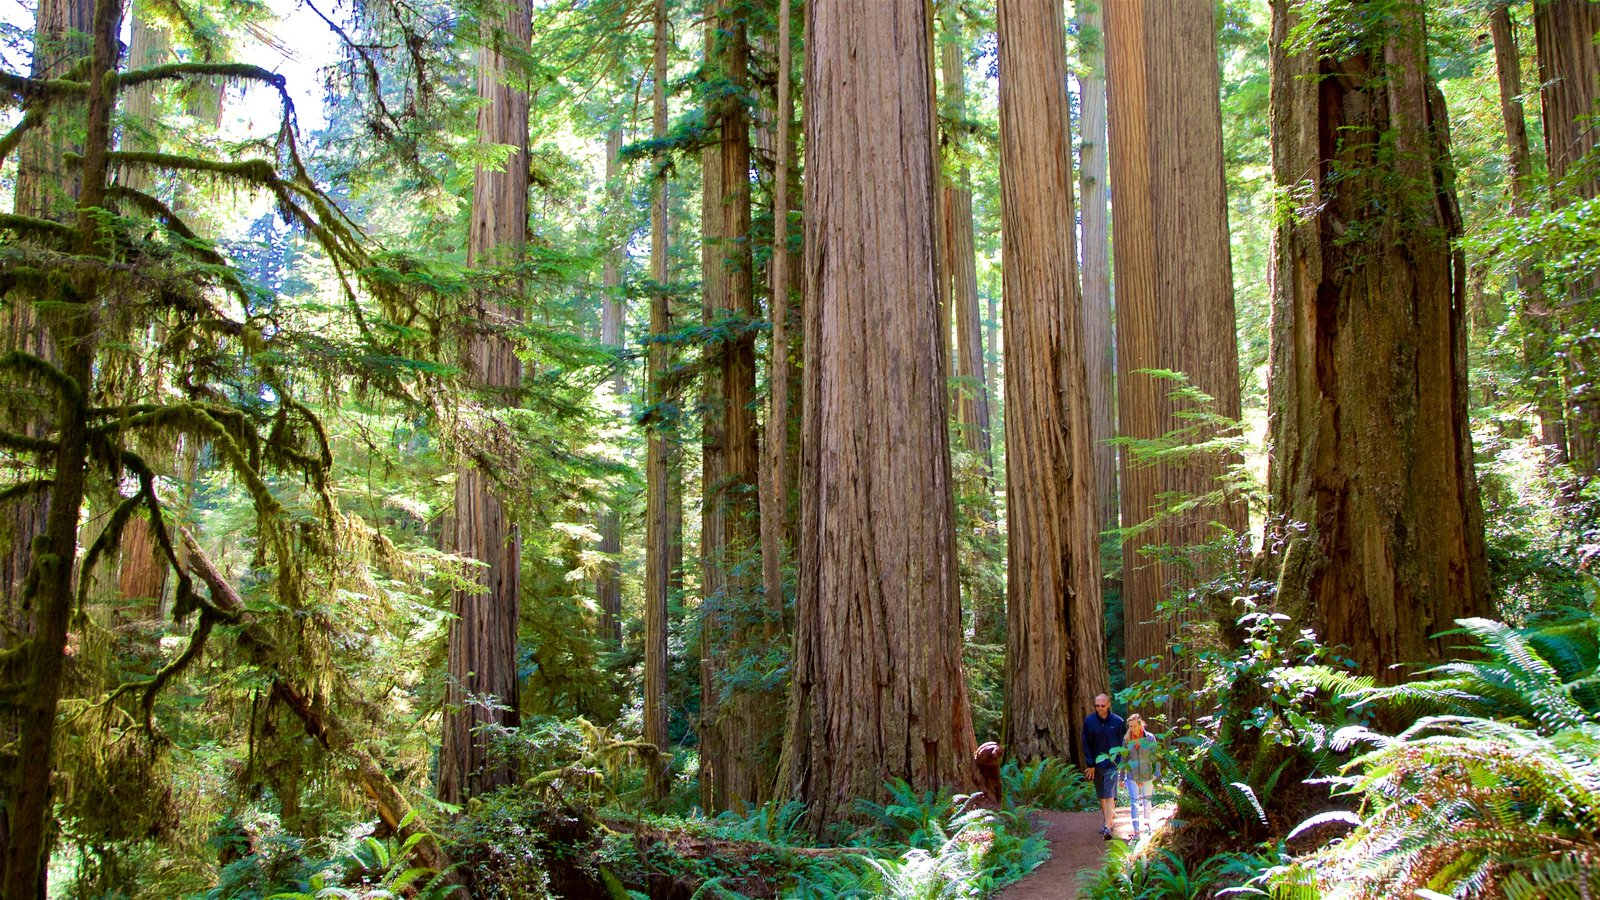 Redwood National and State Parks which includes hiking or walking and forest scenes as well as a couple